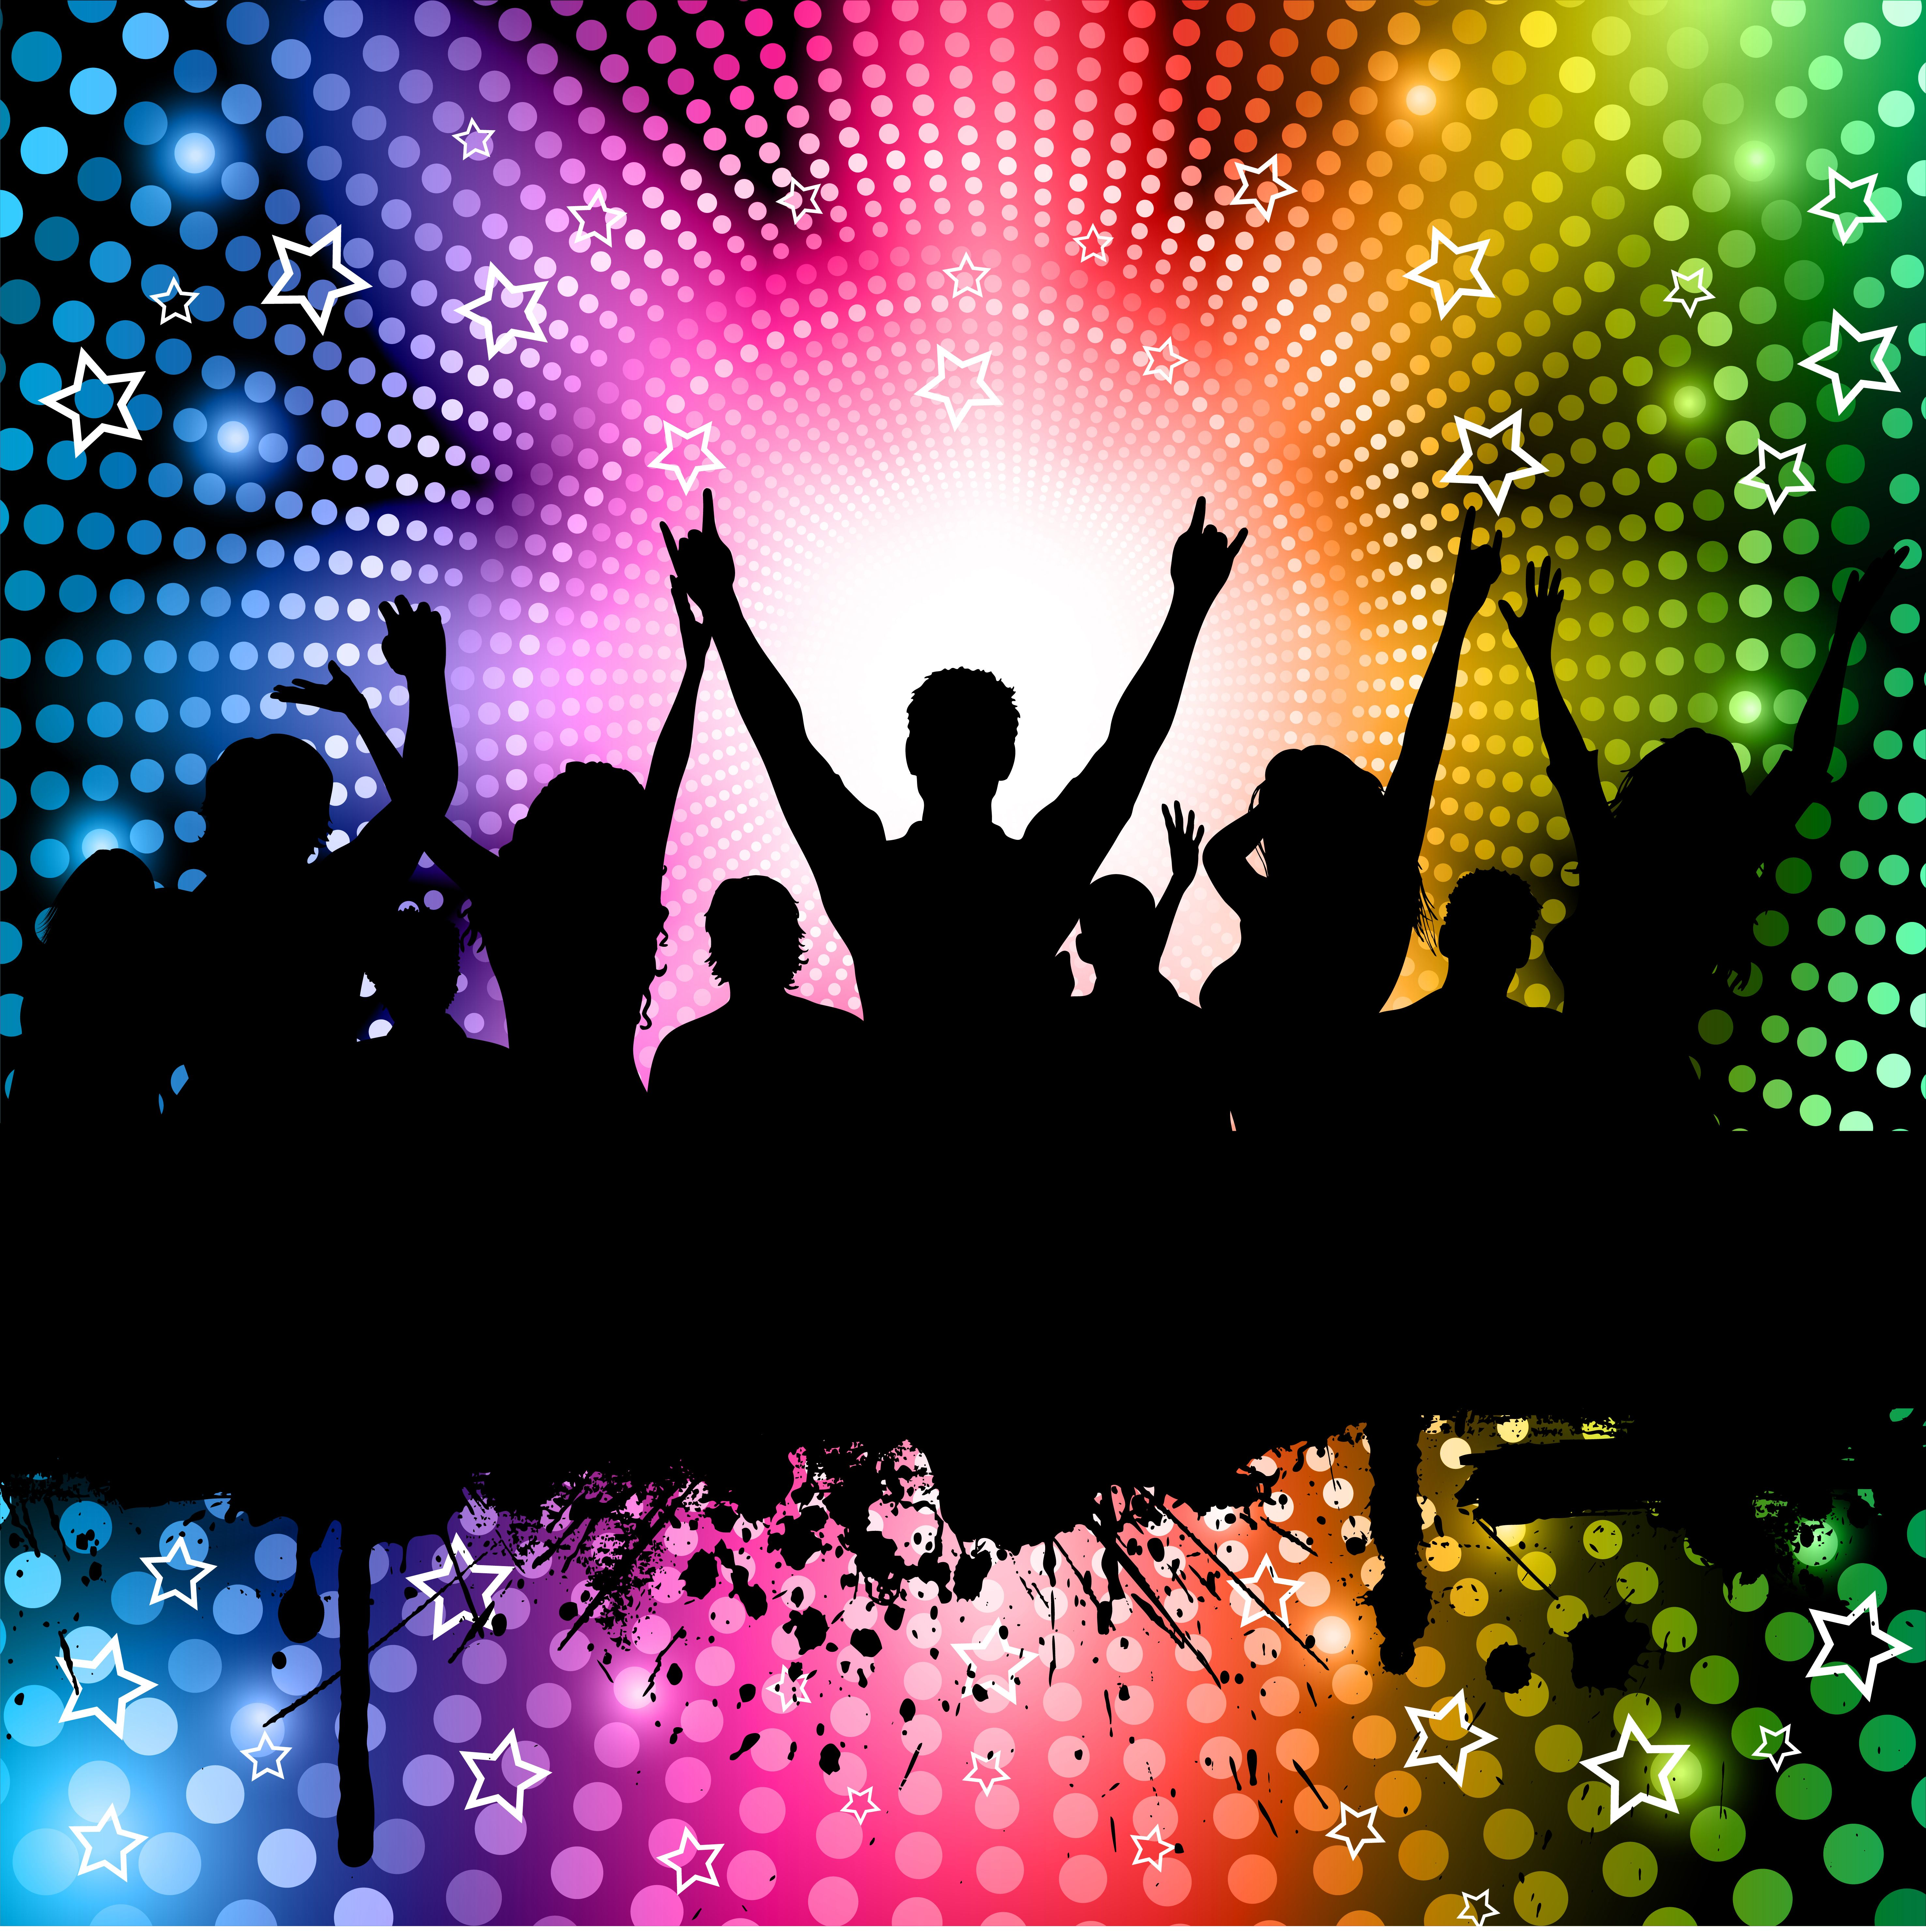 Party Background Vector Choose From Thousands Of Free Vectors Clip Art Designs Icons And Illustrations Created By Artists World Party Background Karaoke Dj